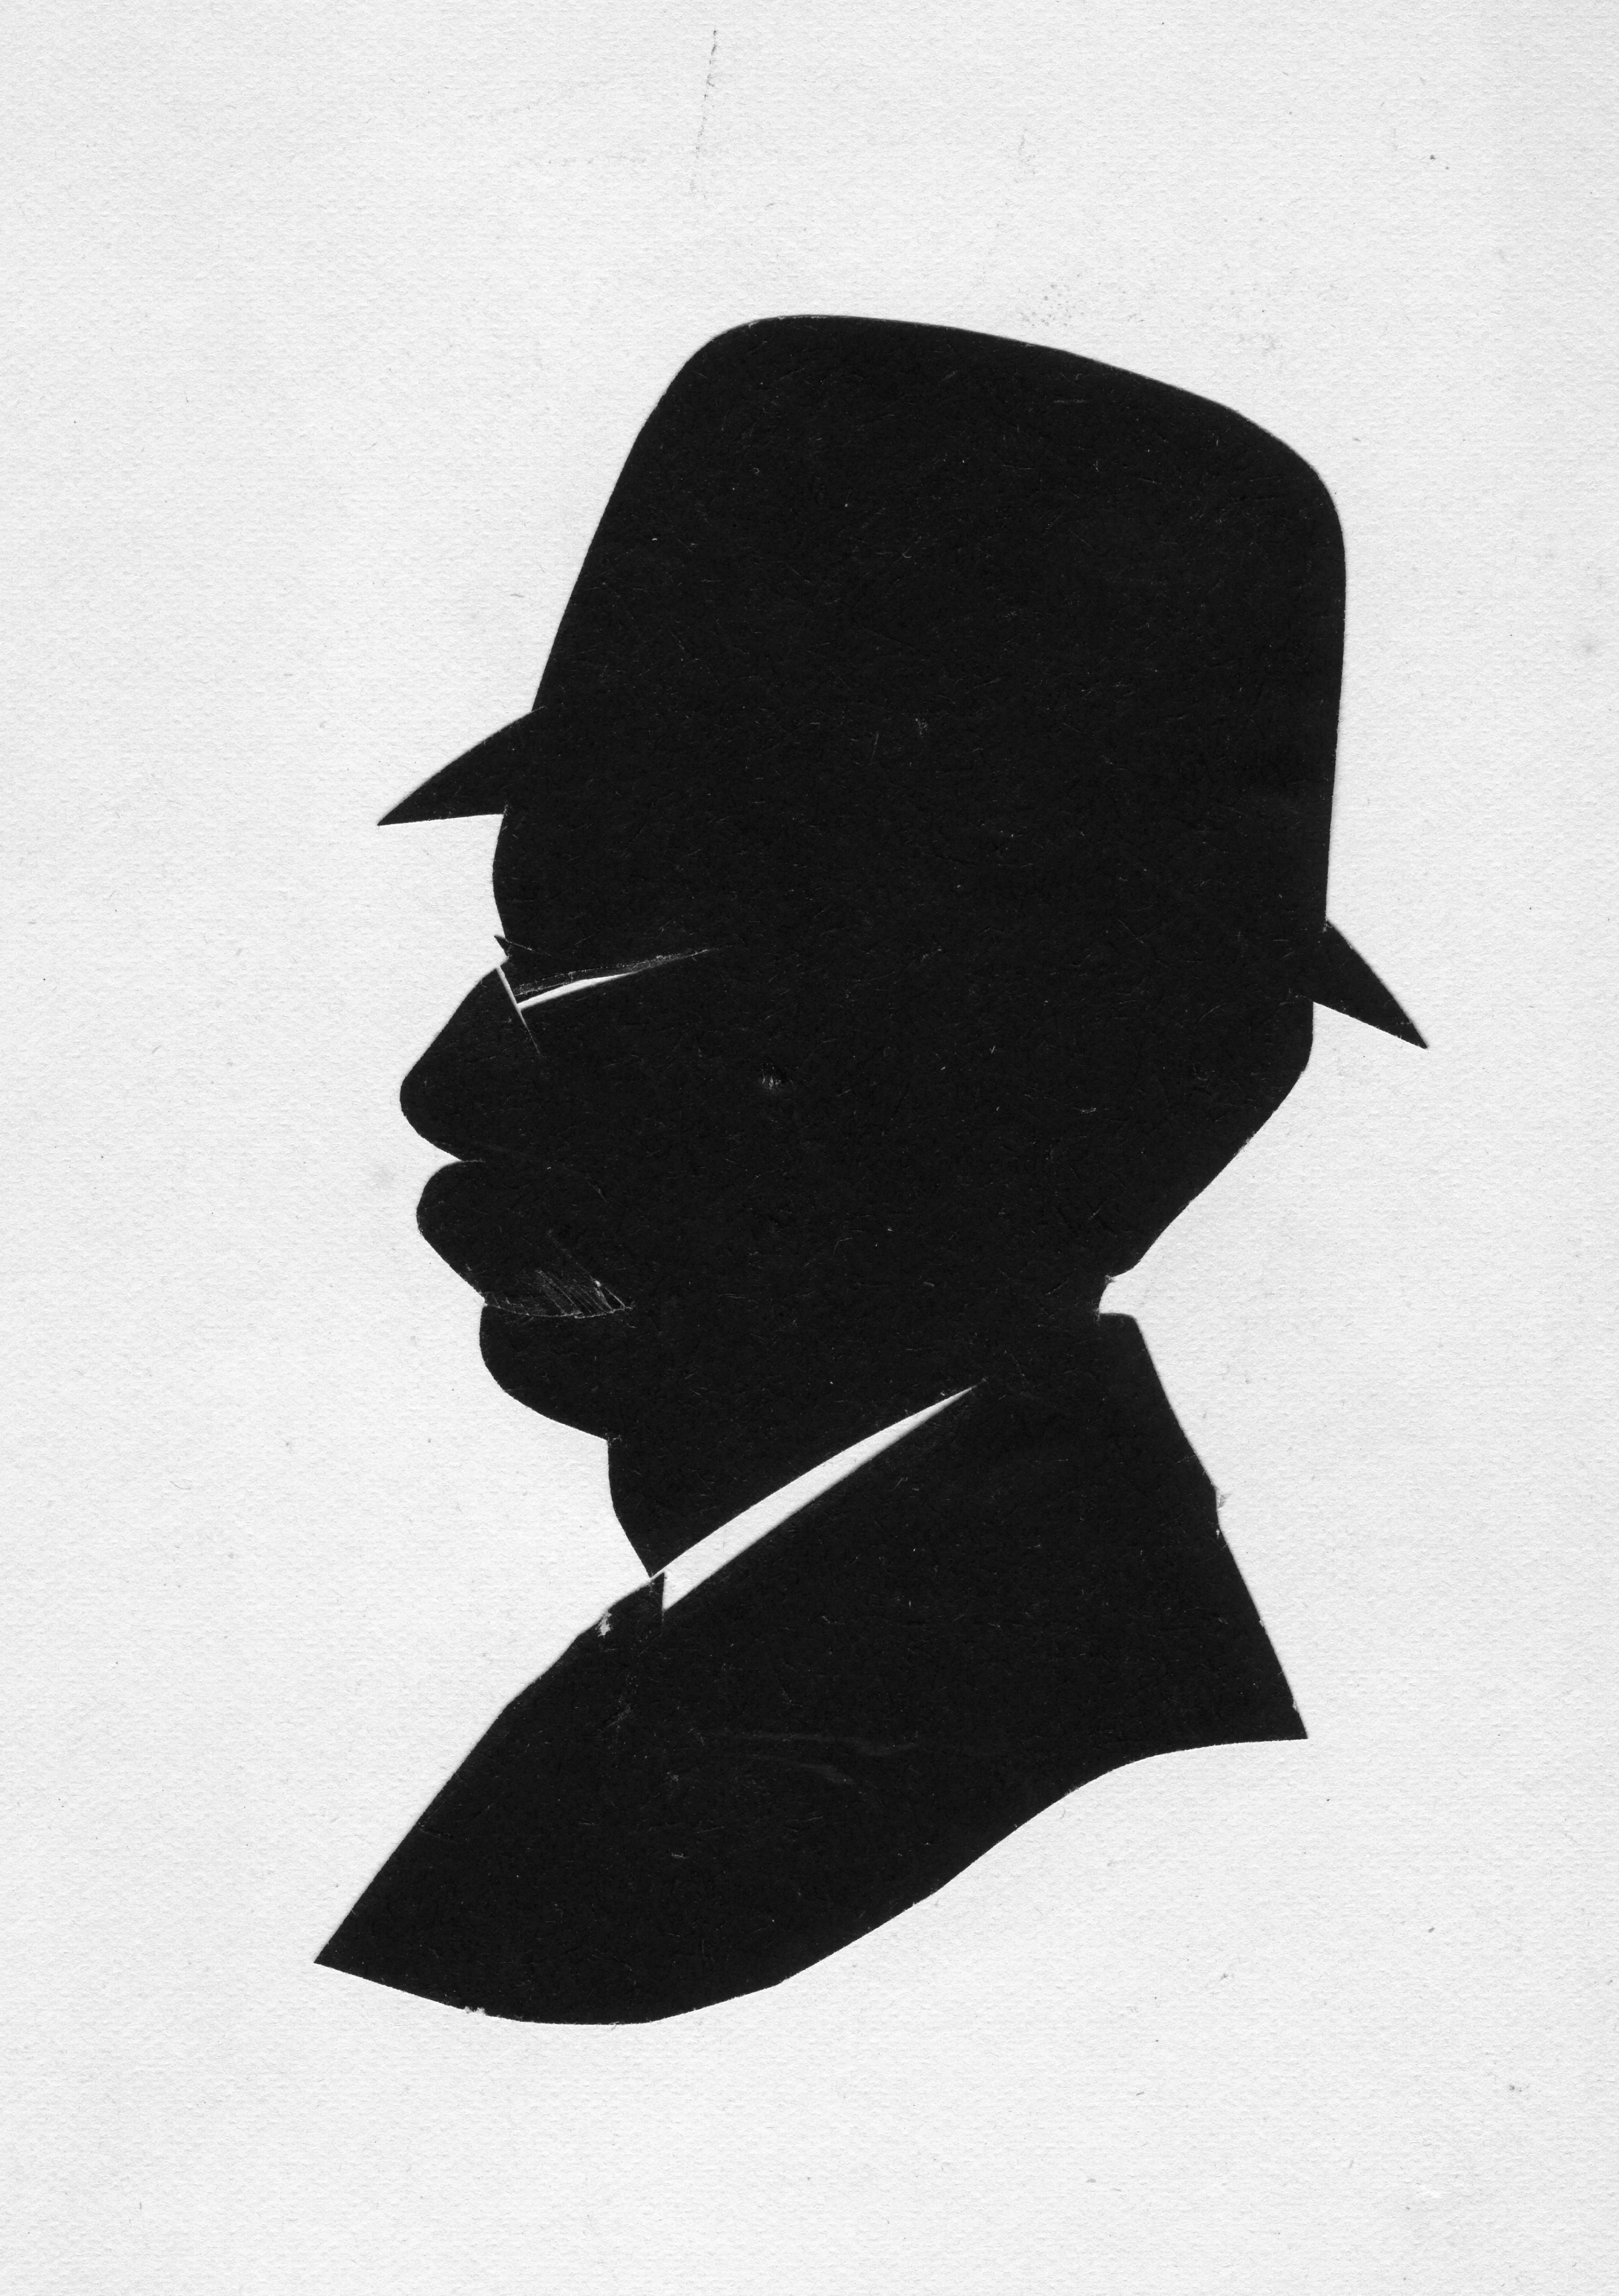 Silhoutte of Seth Chandler wearing a hat and glasses.